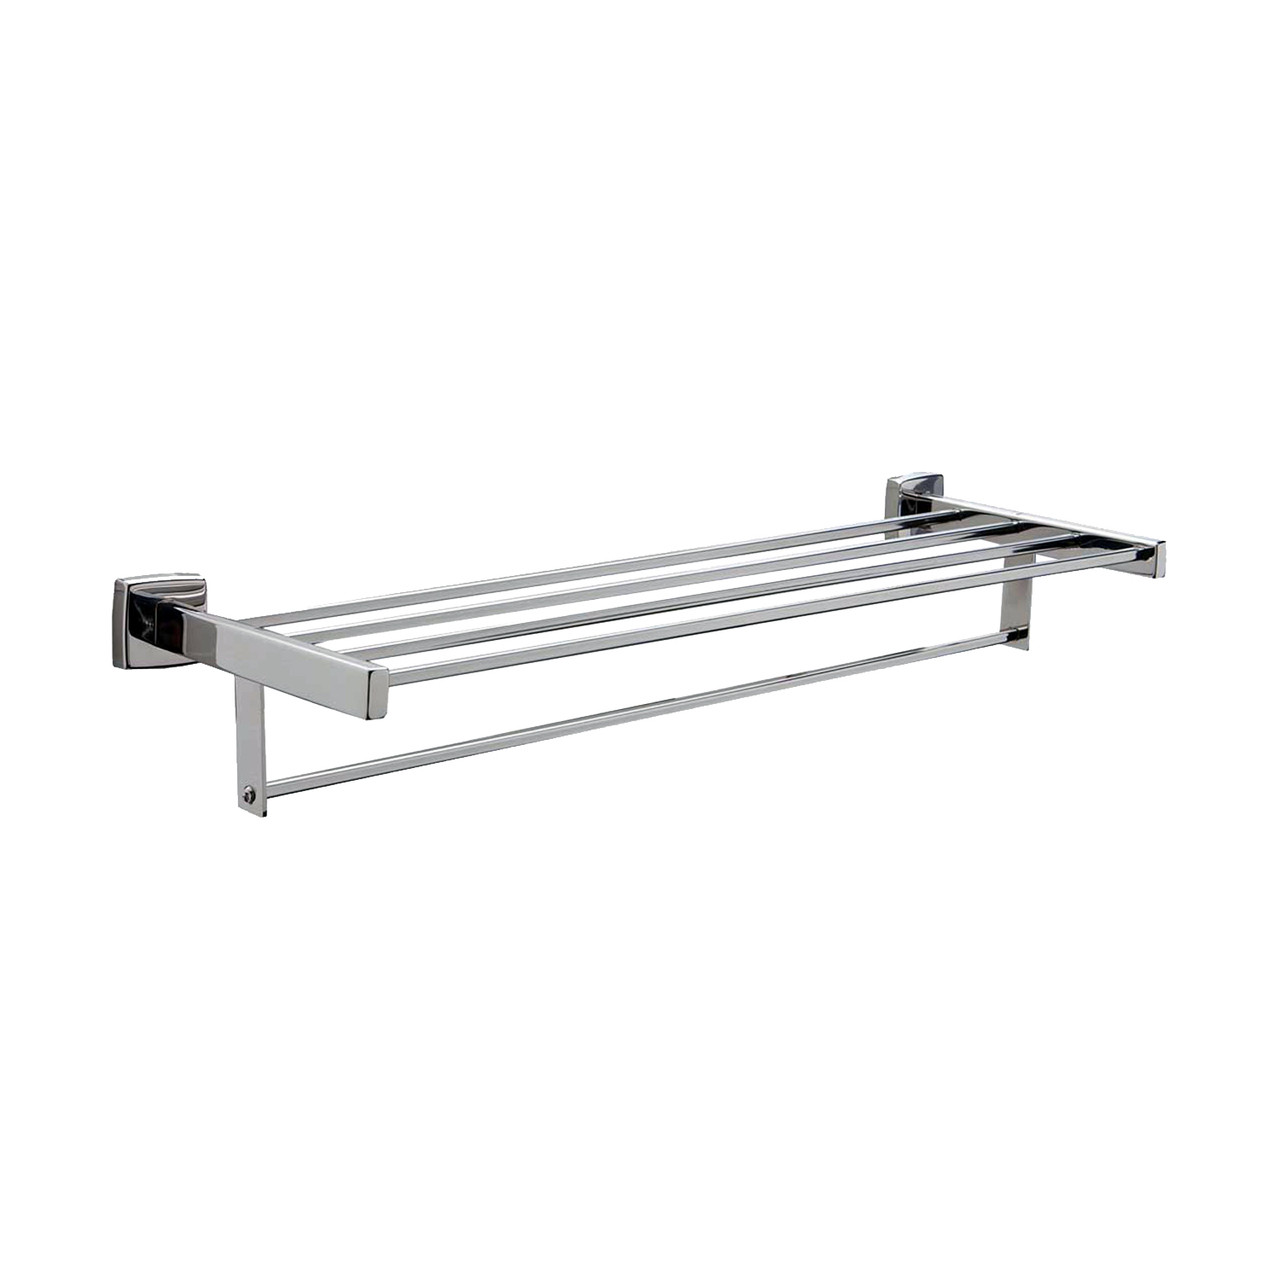 Bobrick B-676x24 - Surface Mounted Towel Shelf with Towel Bar 24 ...